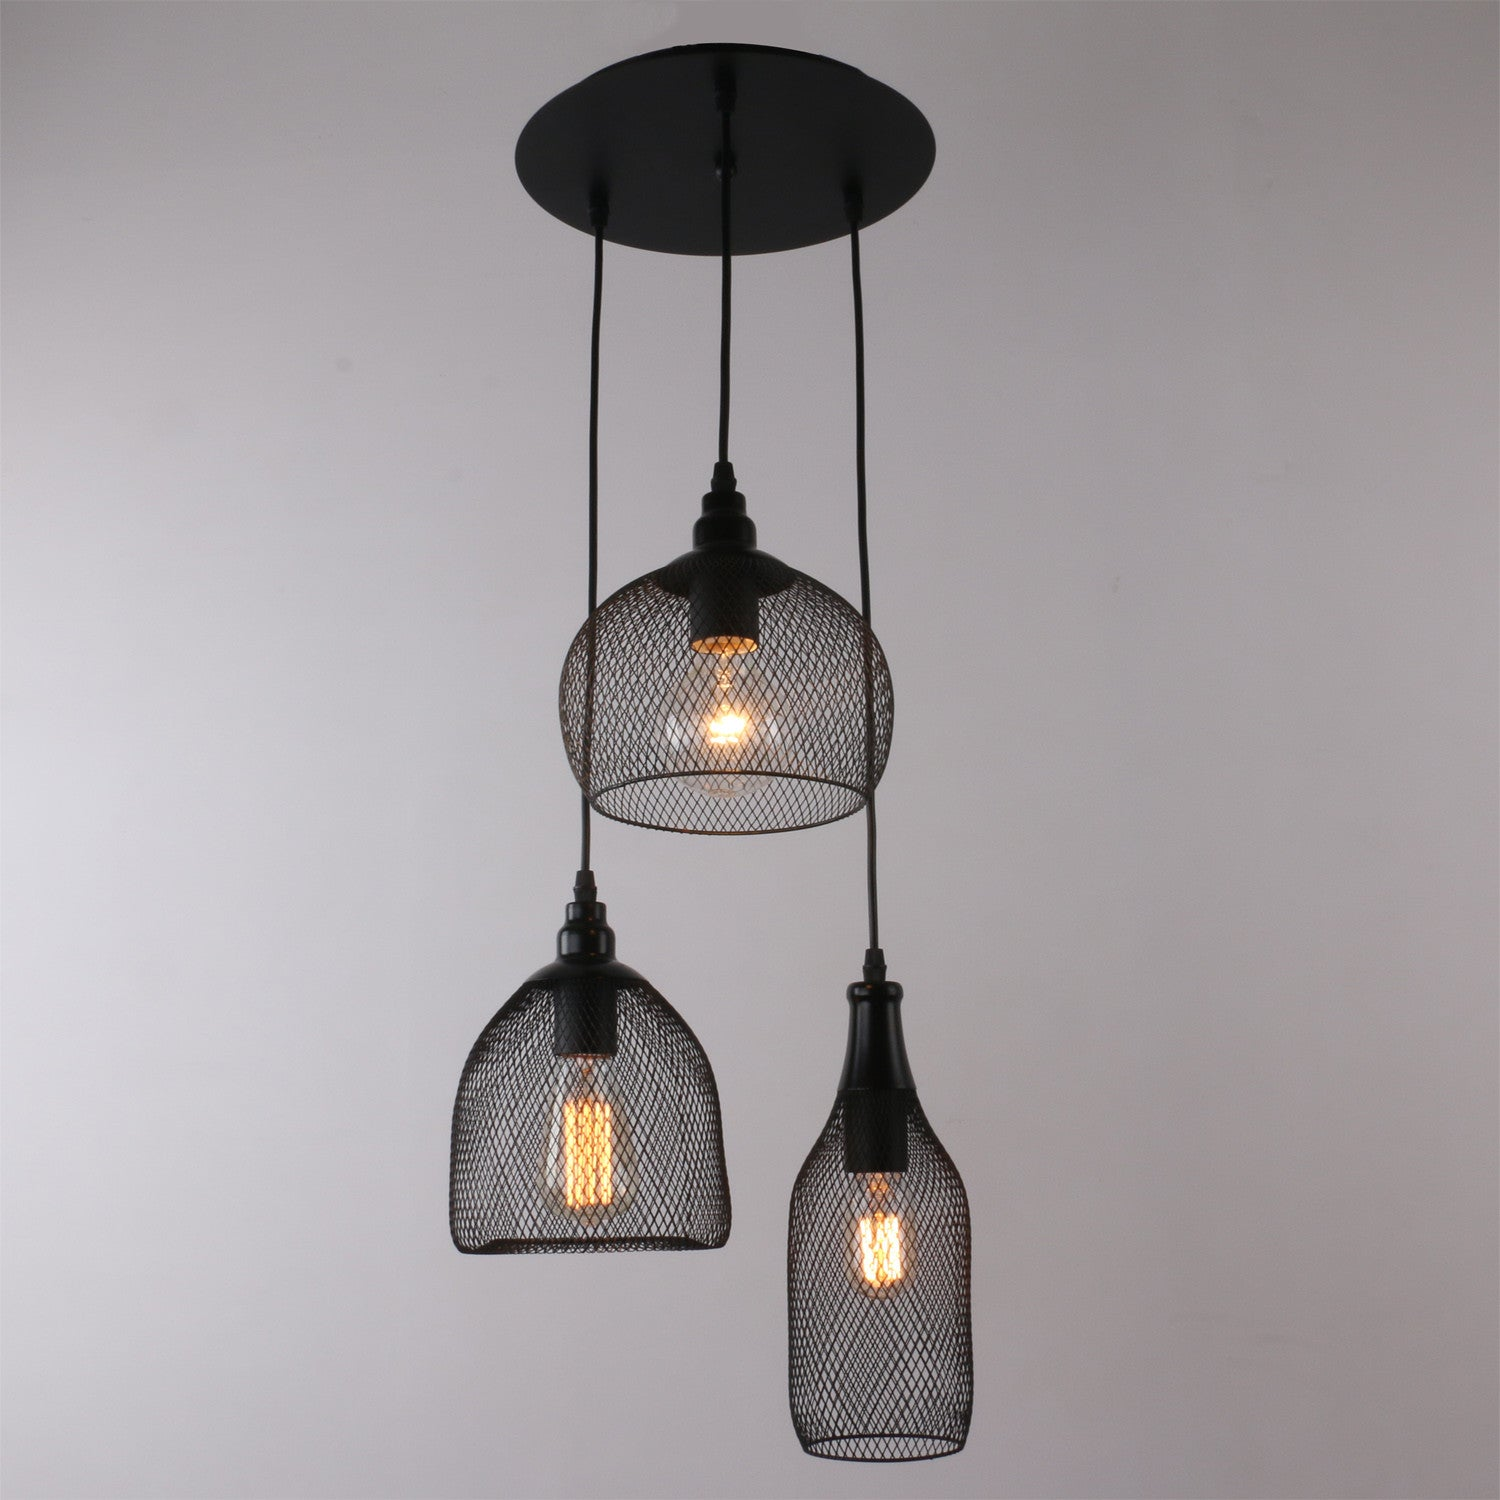 barnyard industrial pendant plug p lights metal light globe in black matte electric warehouse